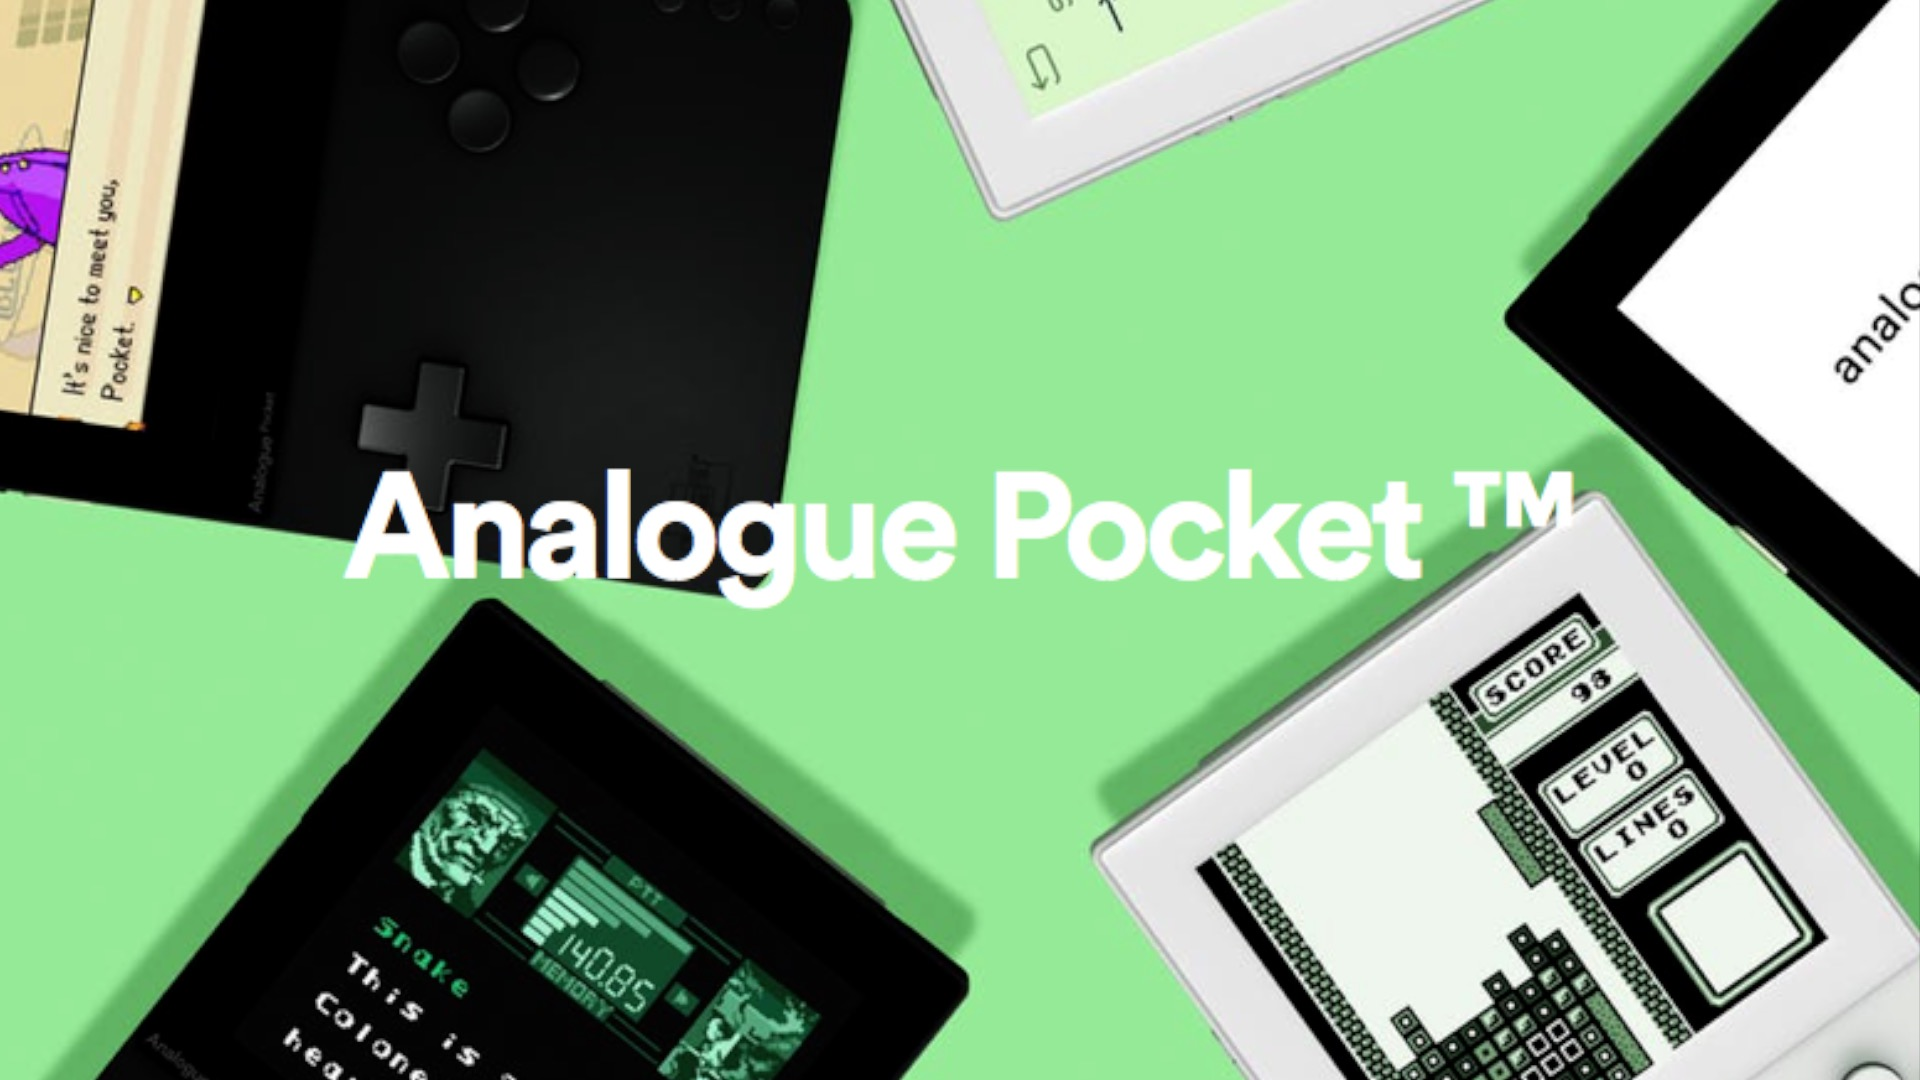 Analogue Pocket